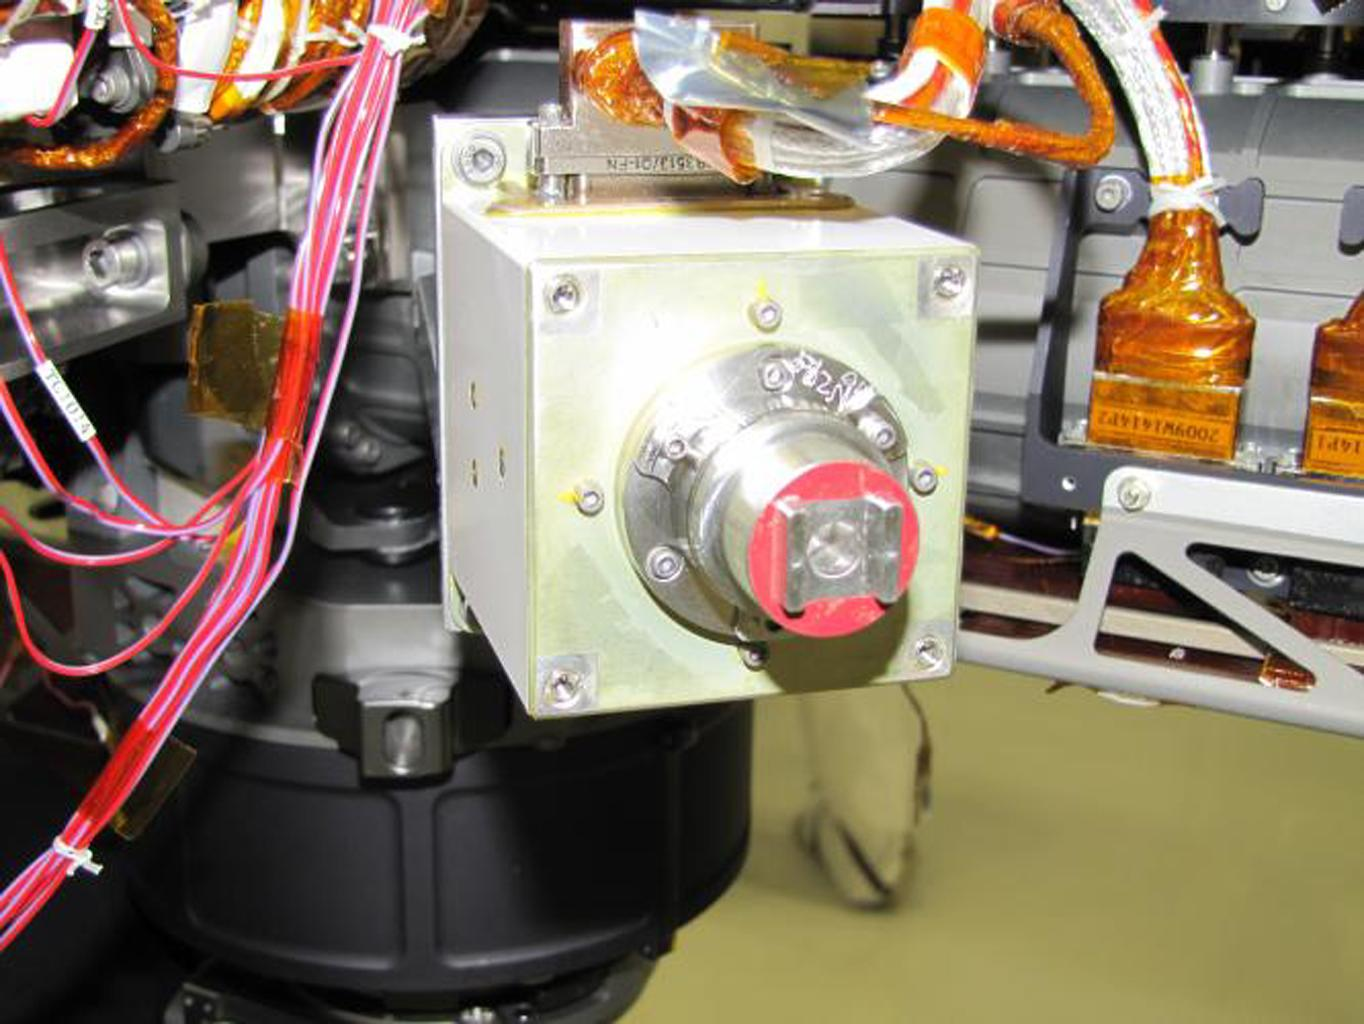 The sensor head on the Alpha Particle X-ray Spectrometer instrument was installed during testing at NASA's Jet Propulsion Laboratory. The instrument is part of NASA's Curiosity rover.